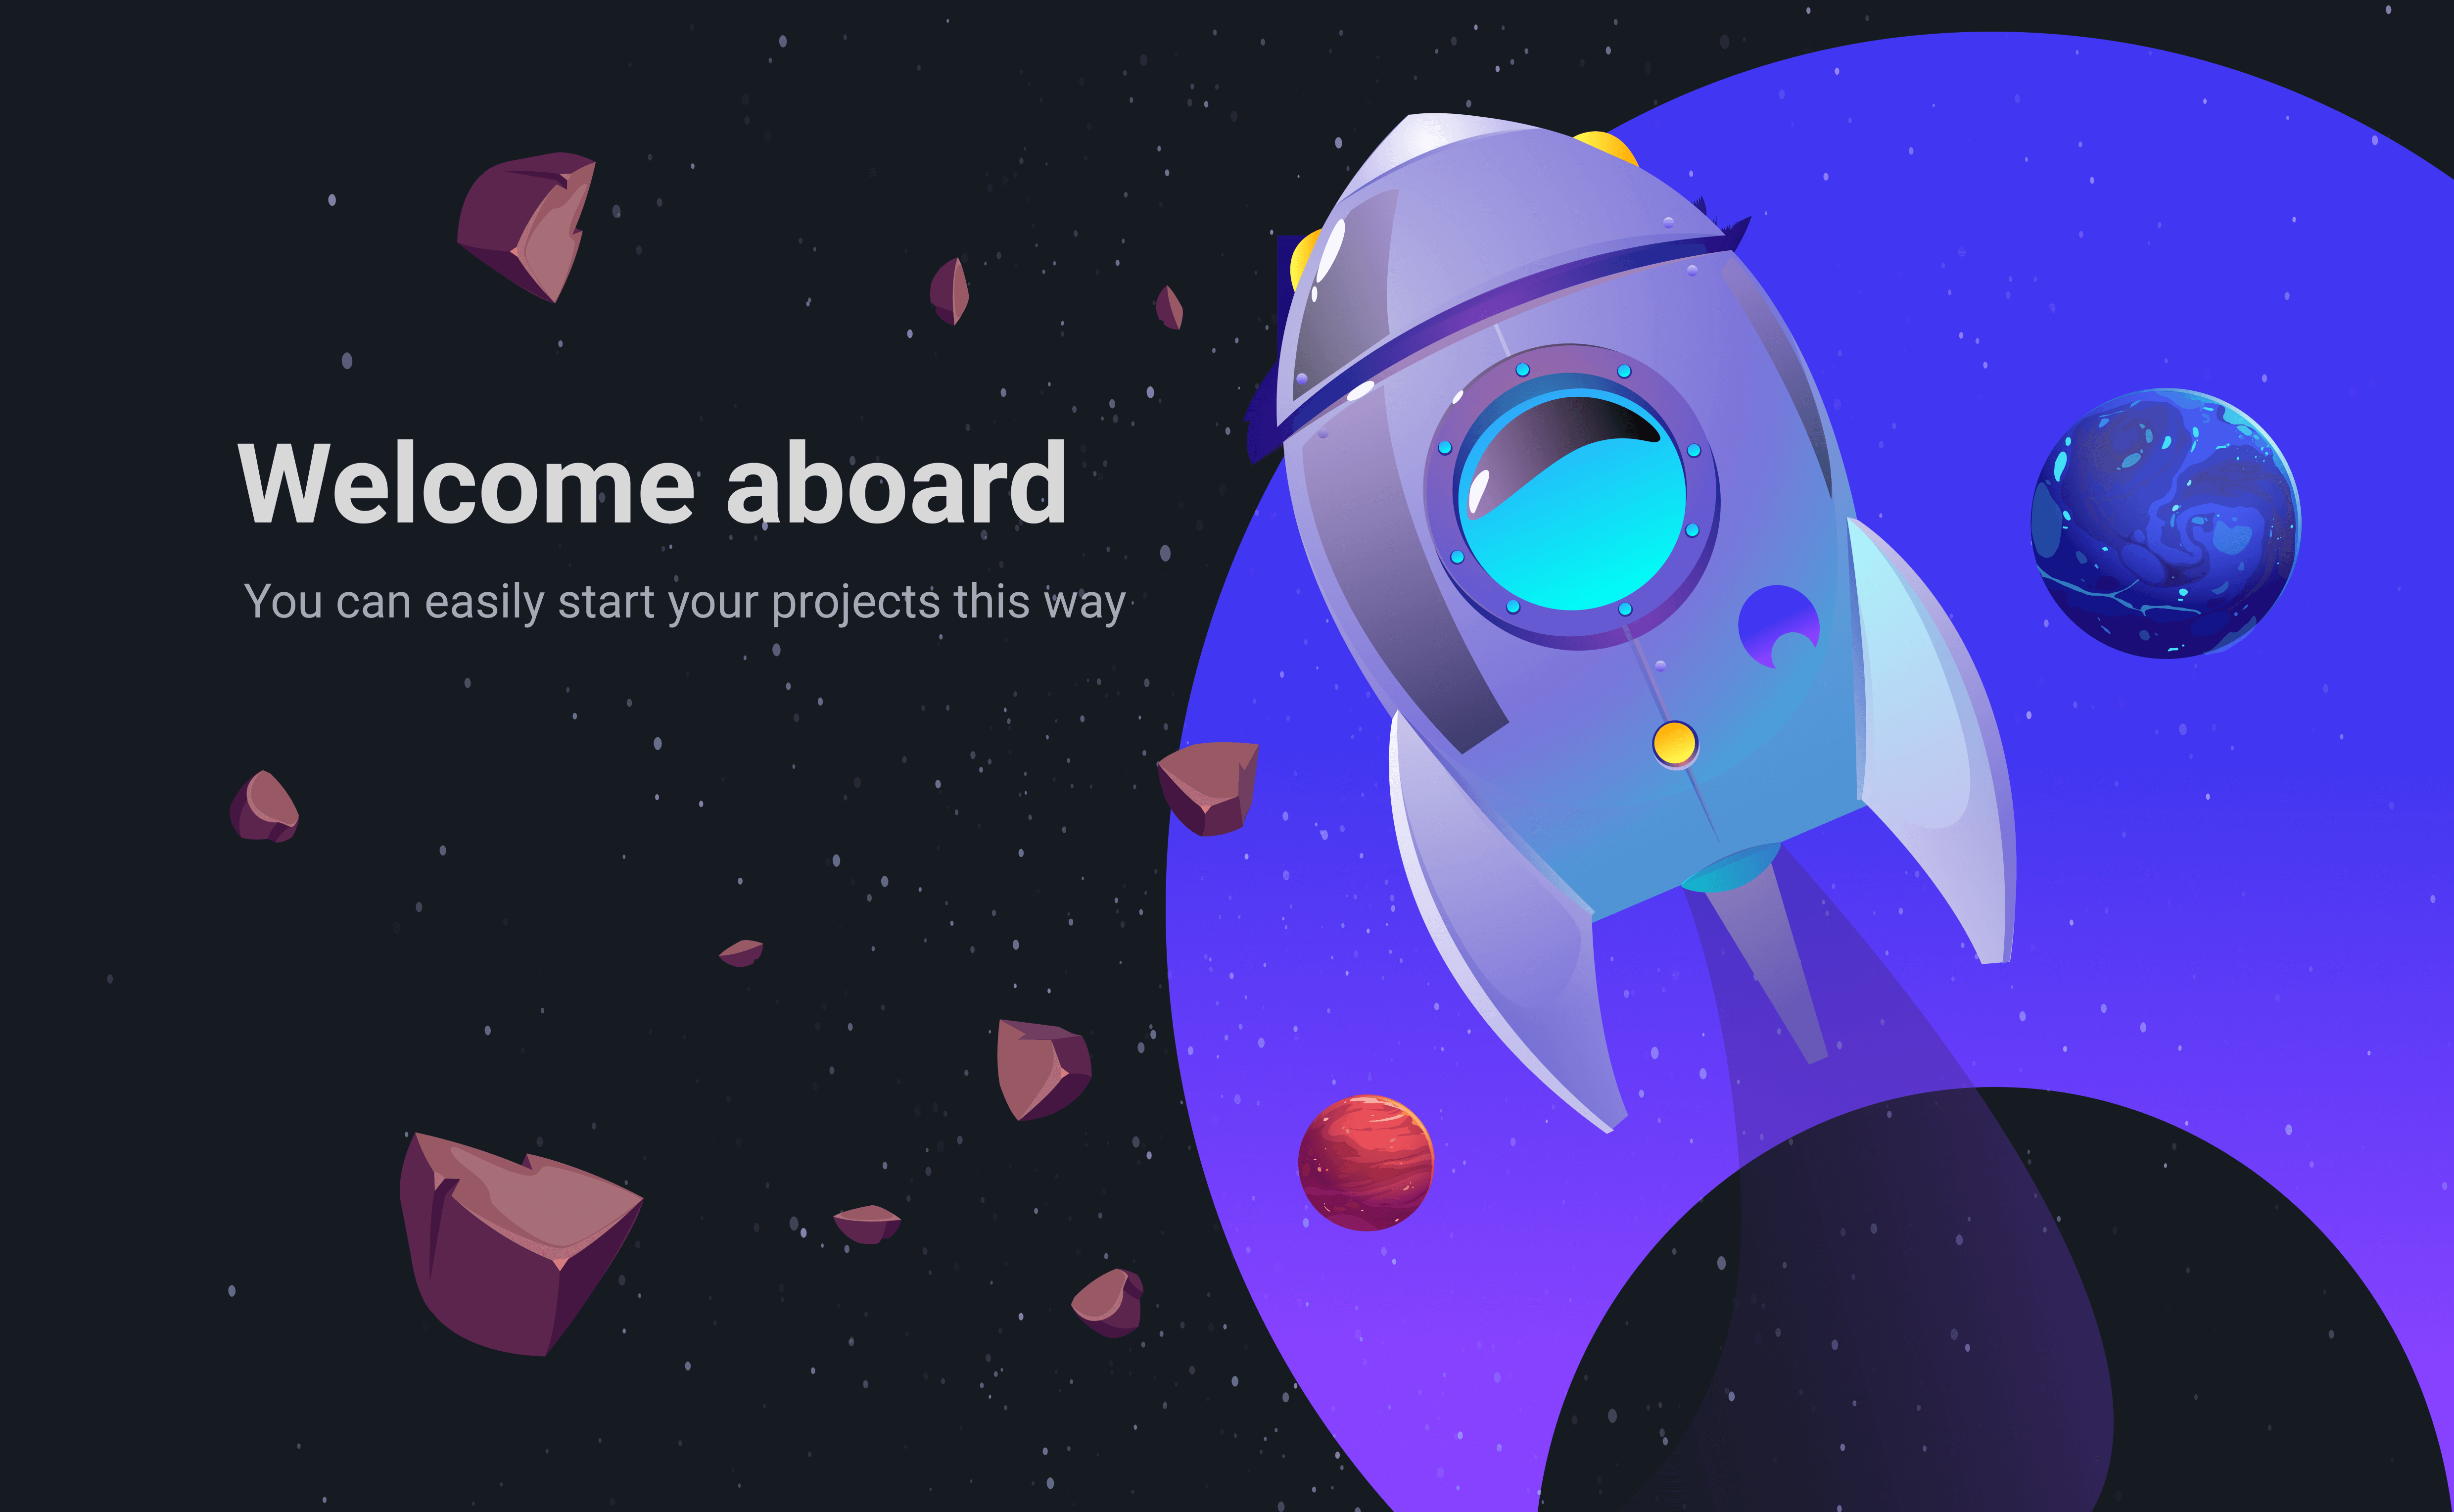 Nodrize platform to build projects at the speed of light